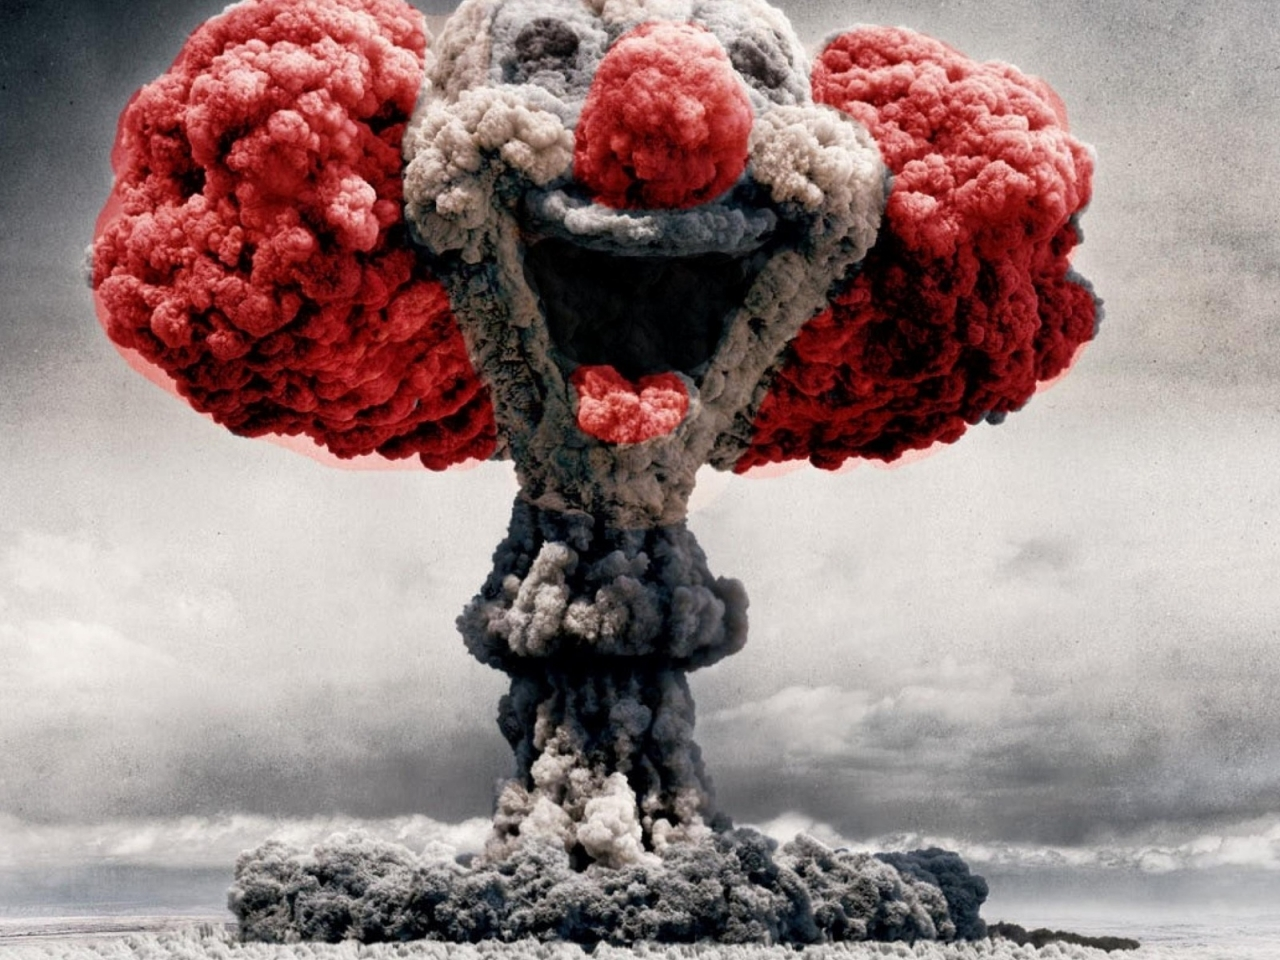 Nuclear Clown for 1280 x 960 resolution